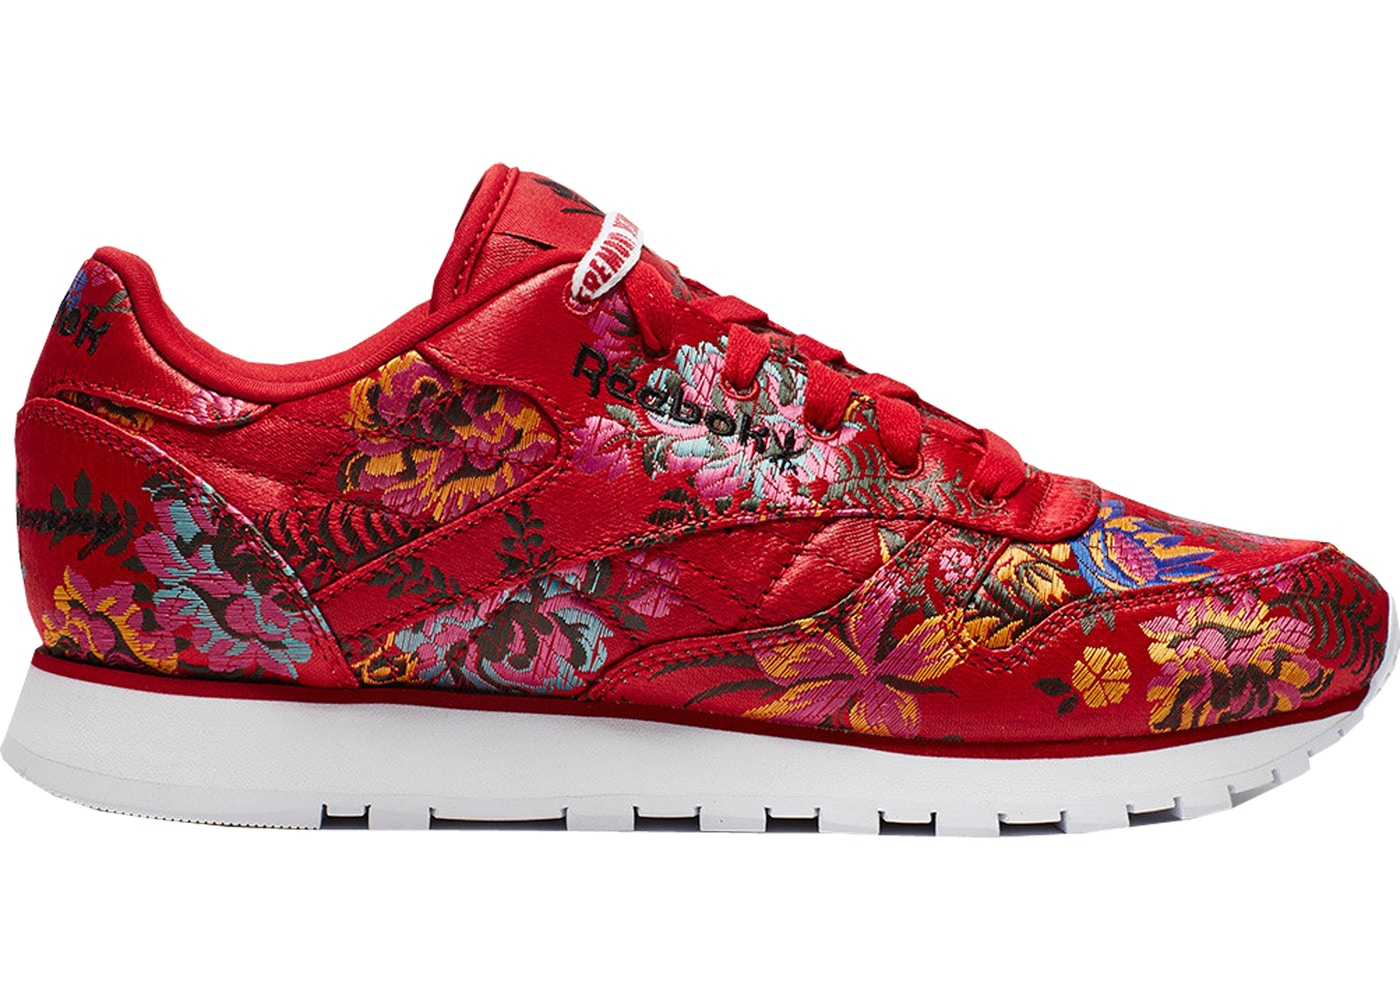 7302548b0e6 Reebok Classic Leather Opening Ceremony Floral Satin Red